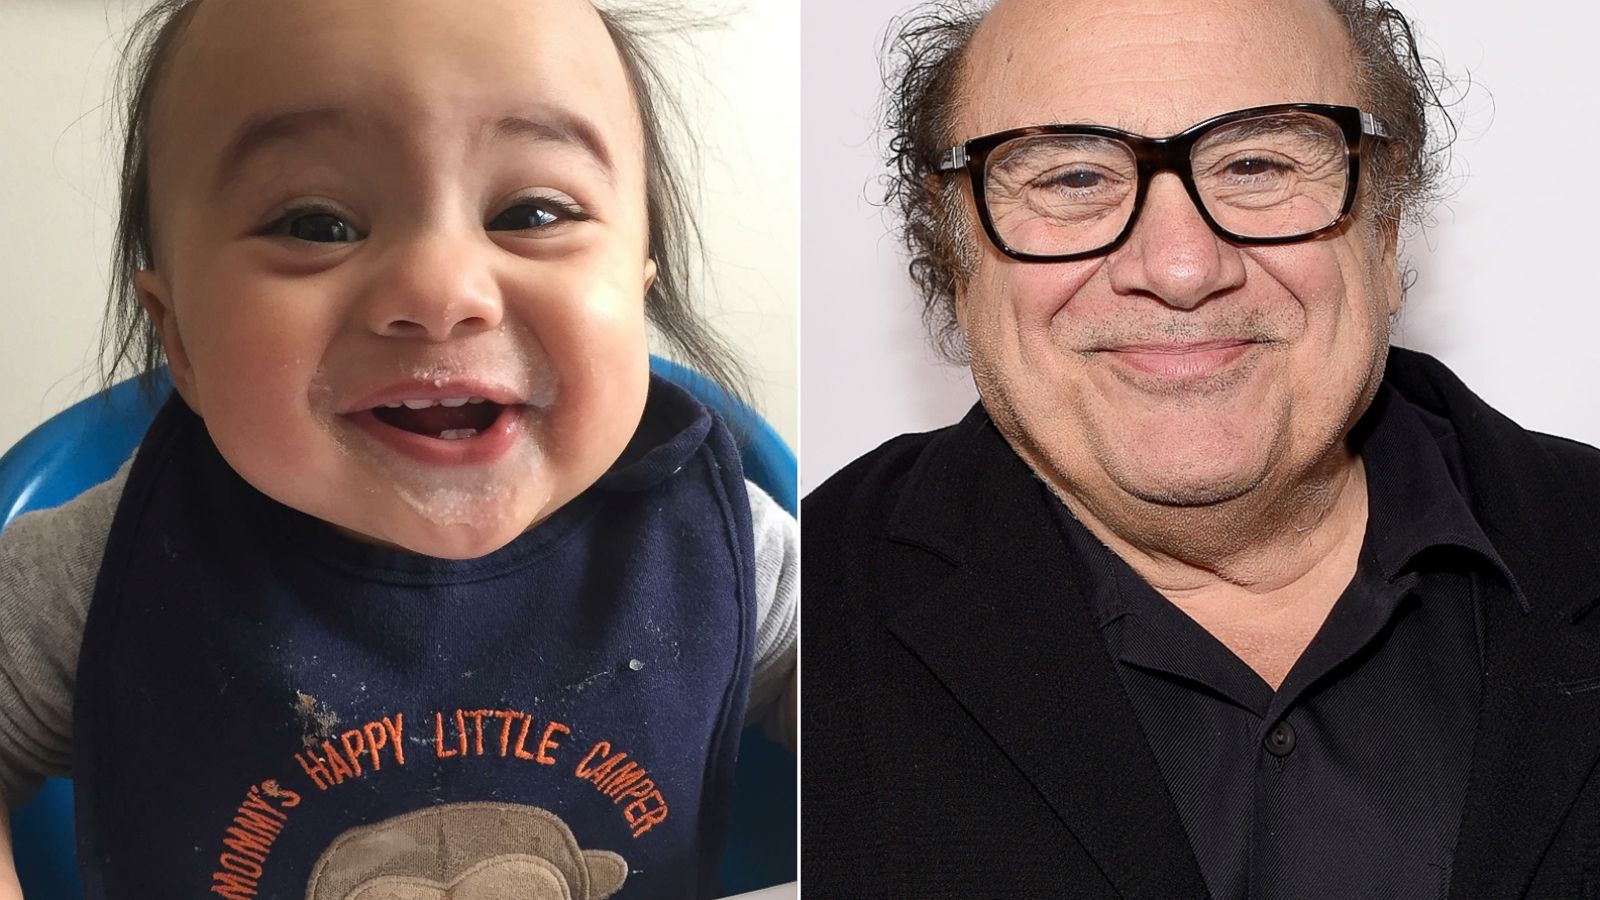 Danny de Vito broke up with his wife after 30 years of marriage 09.10.2012 26